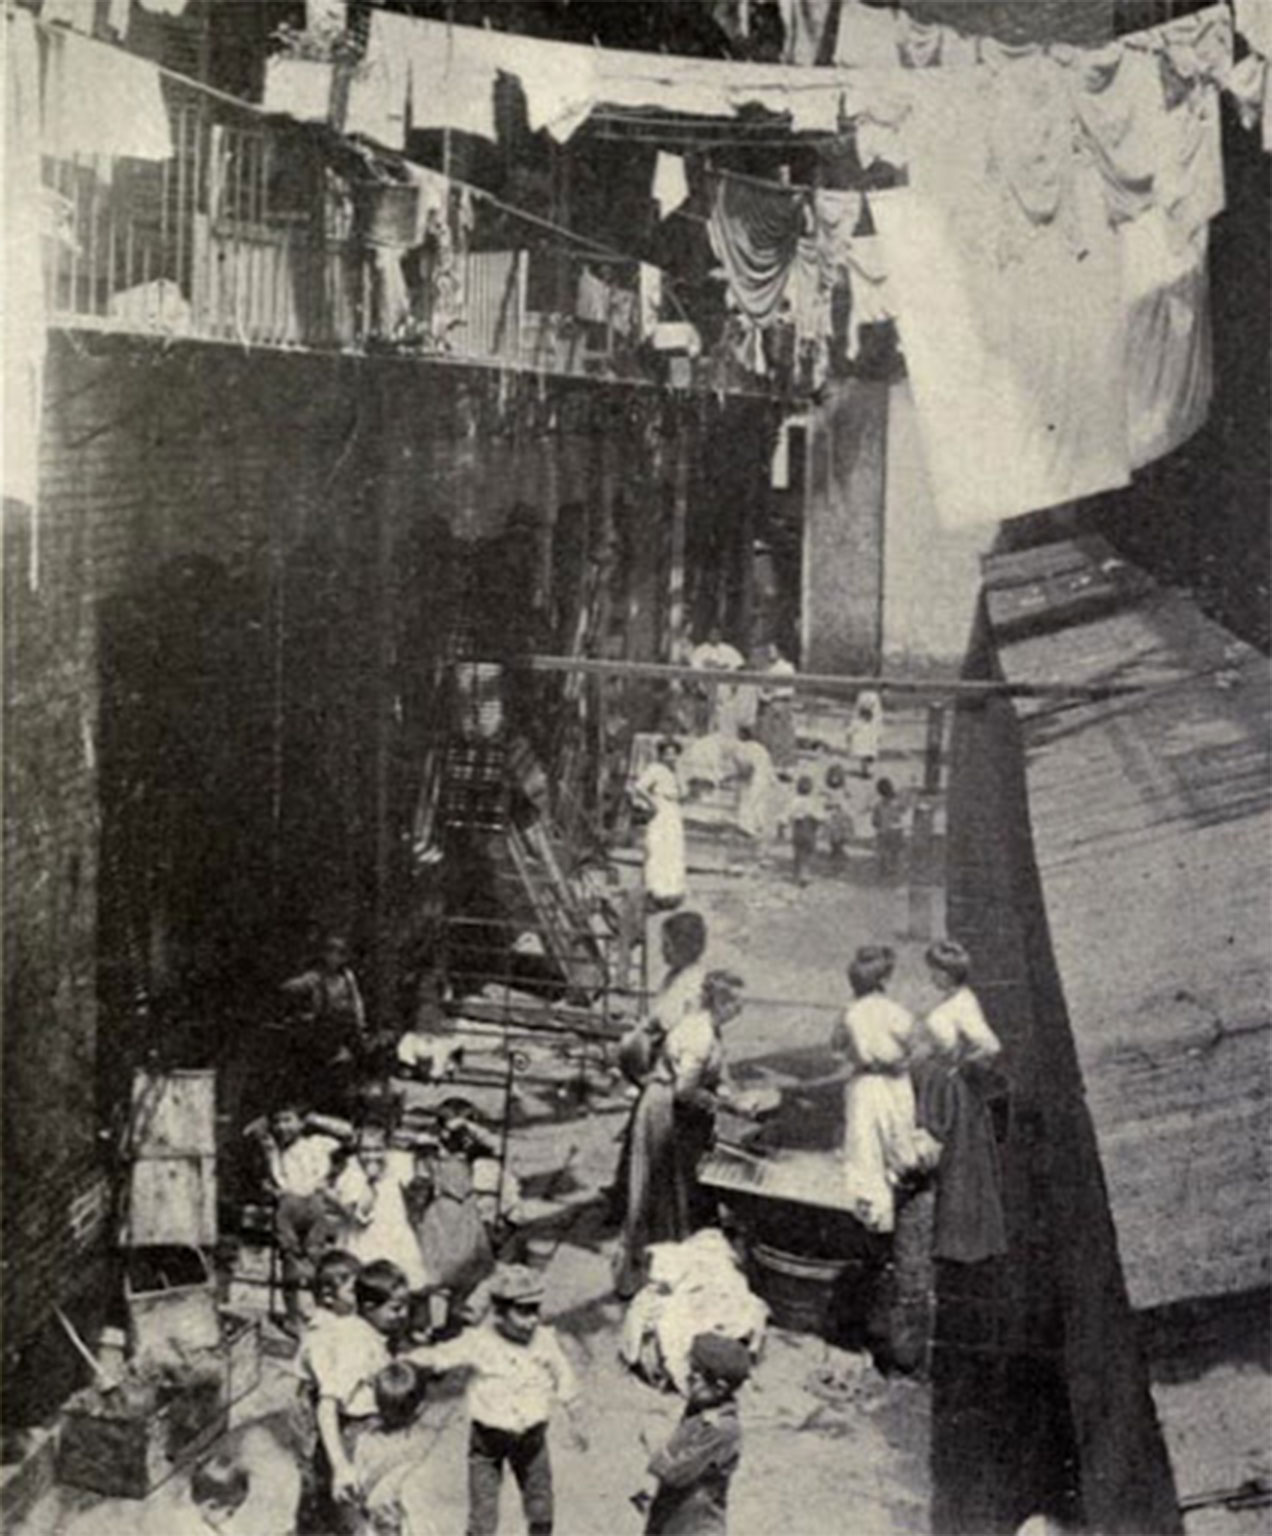 These little spaces of outside were busy with all of the people who lived in the tenements. Children played, women did wash, gardens grew, garbage was thrown.